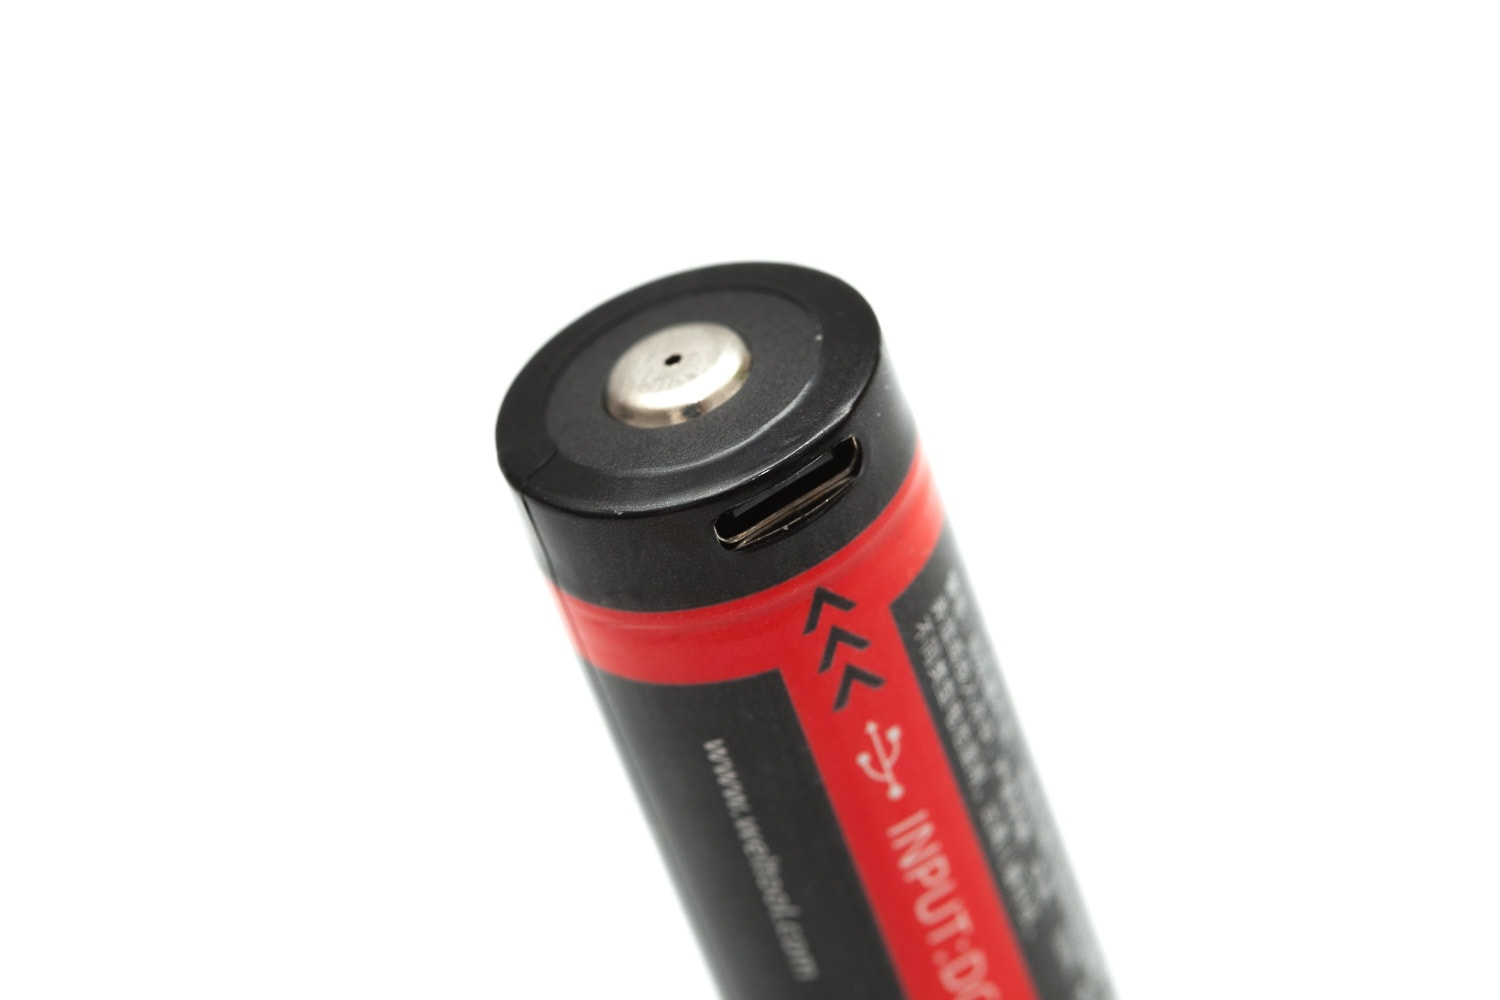 Weltool battery charge port